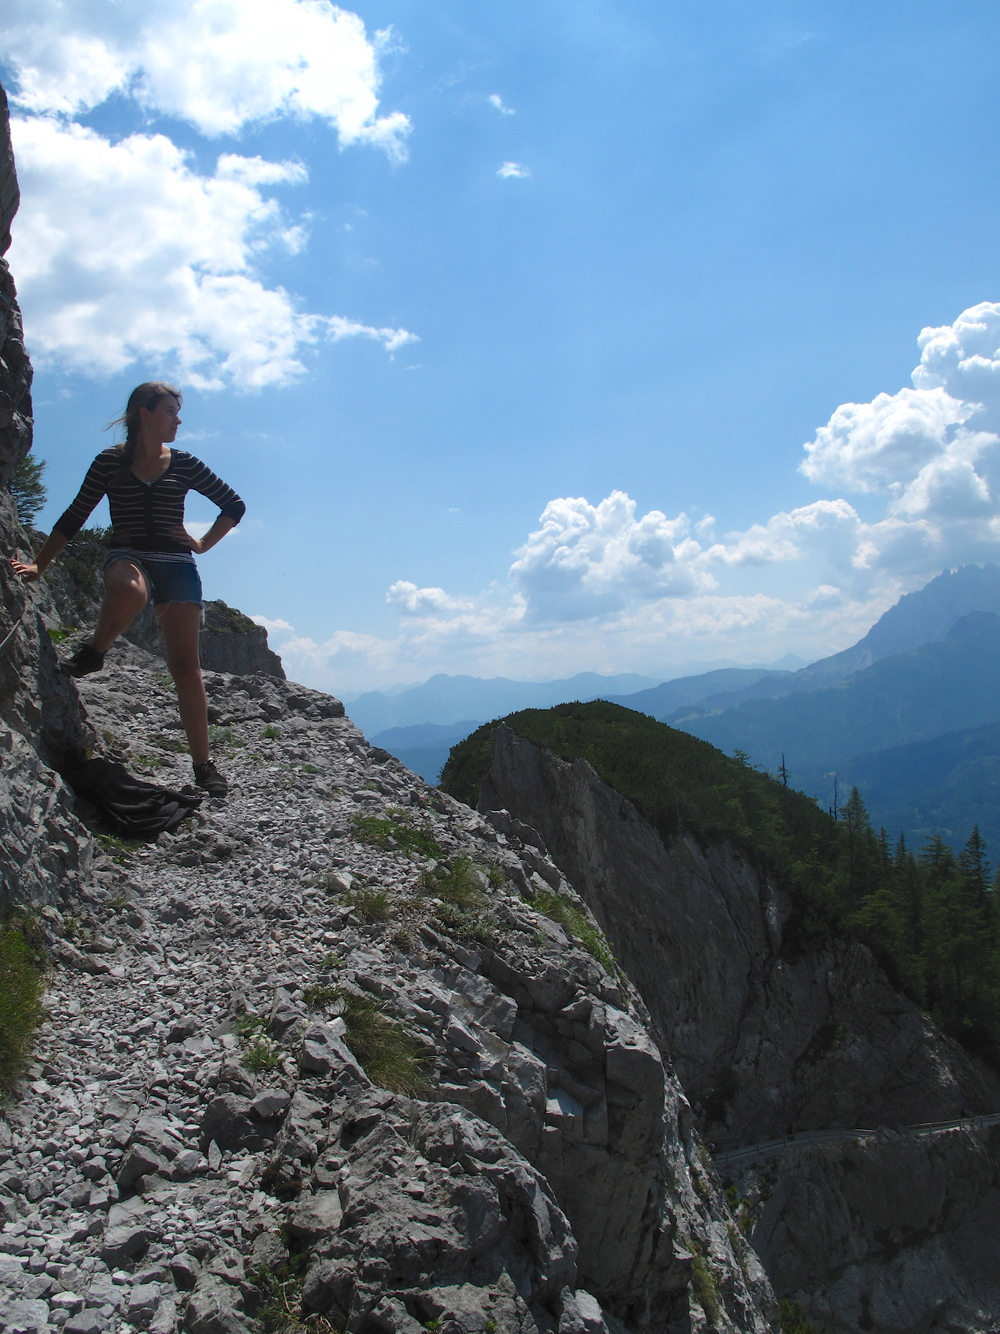 Climbing a mountain trail near Werfen, Austria- being intrepid.